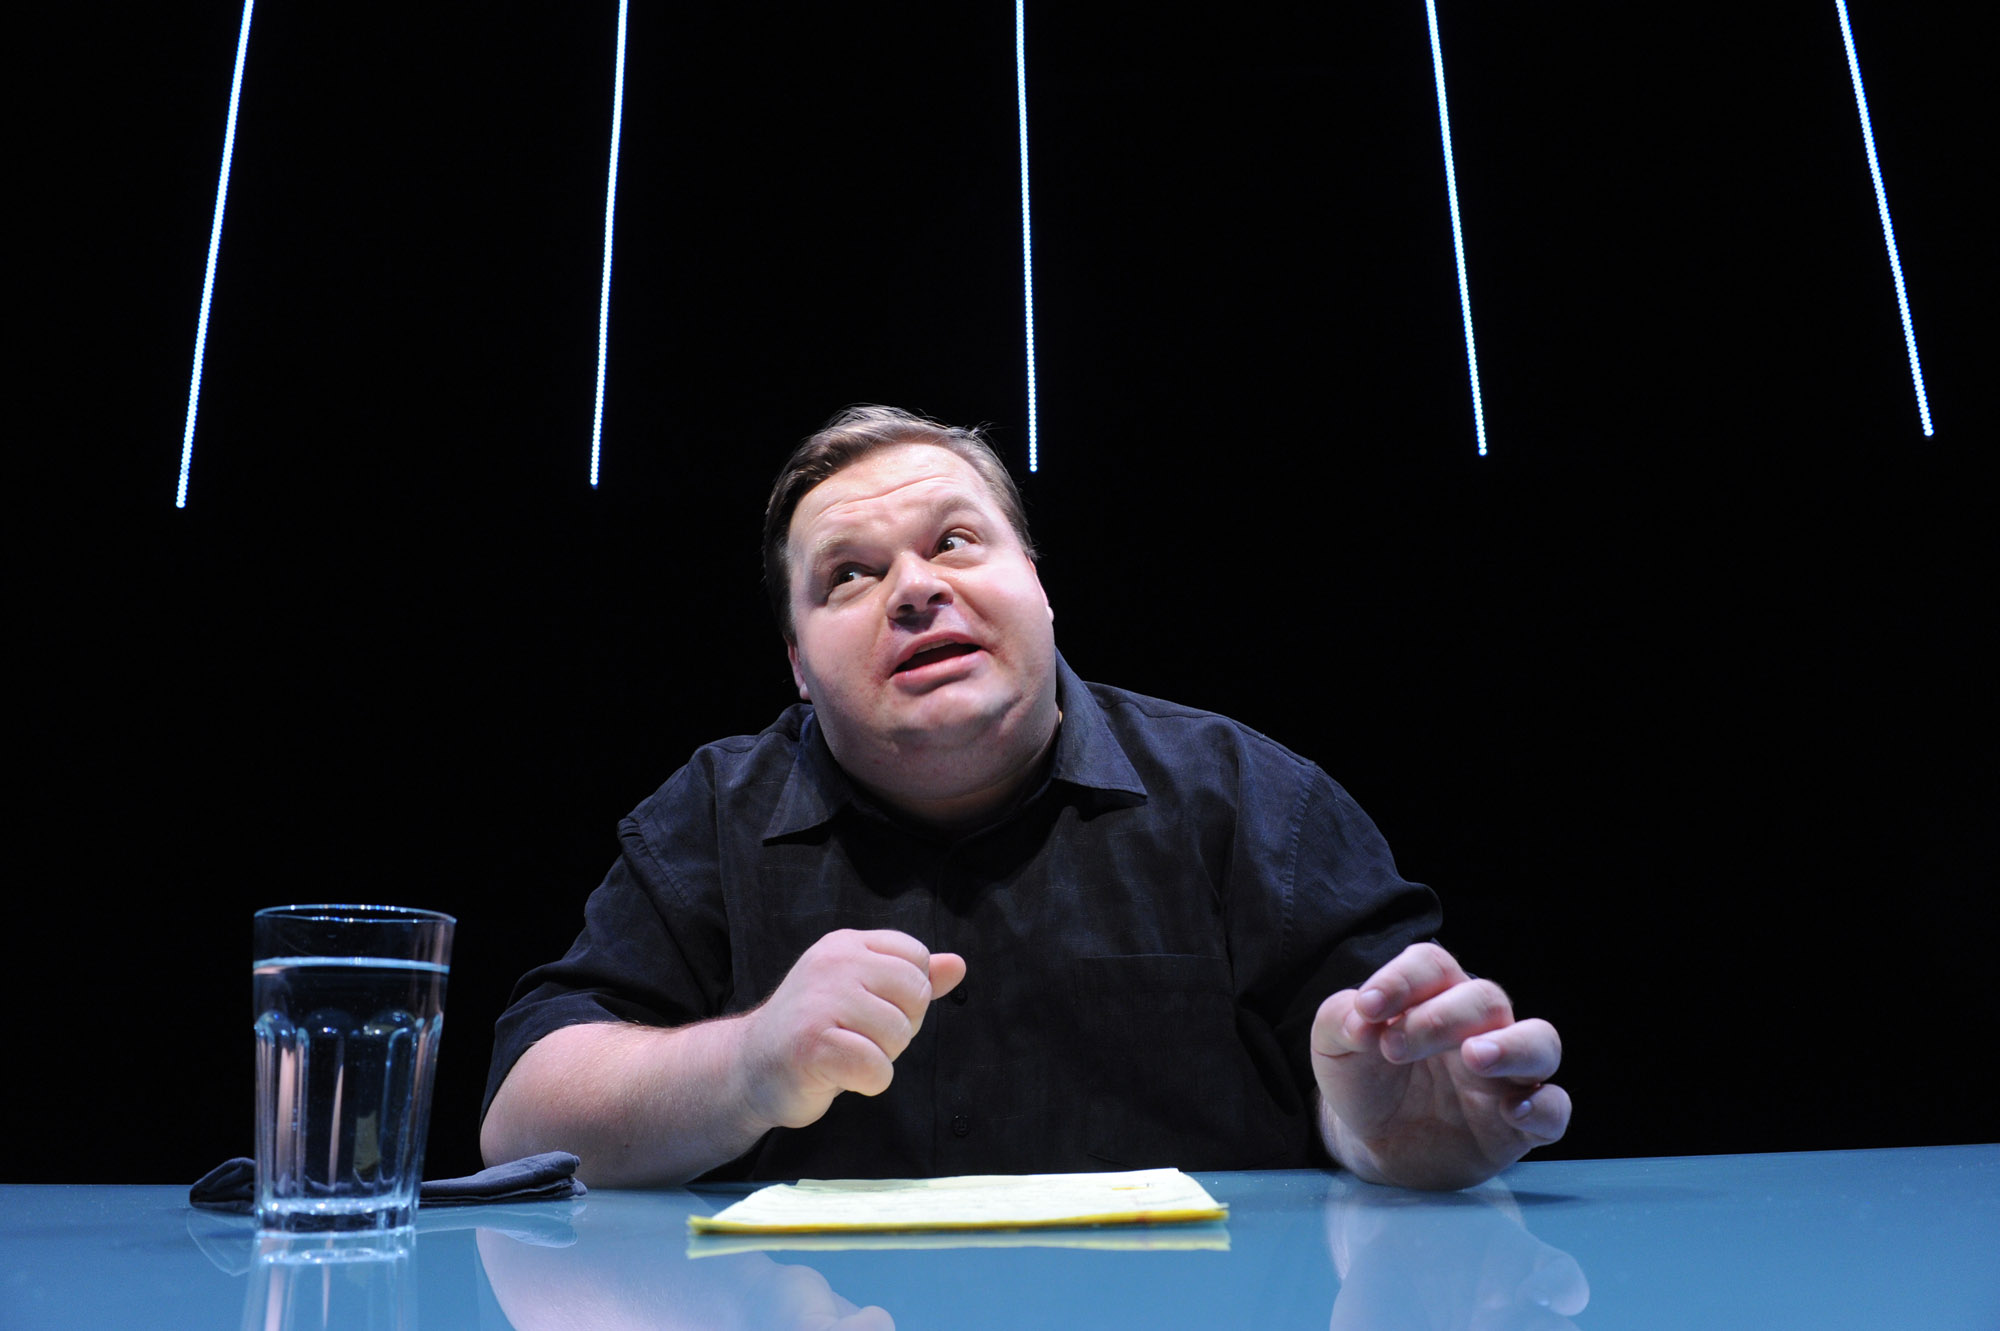 Mike Daisey in The Agony and the Ecstasy of Steve Jobs. Photo credit: Stan Barouh